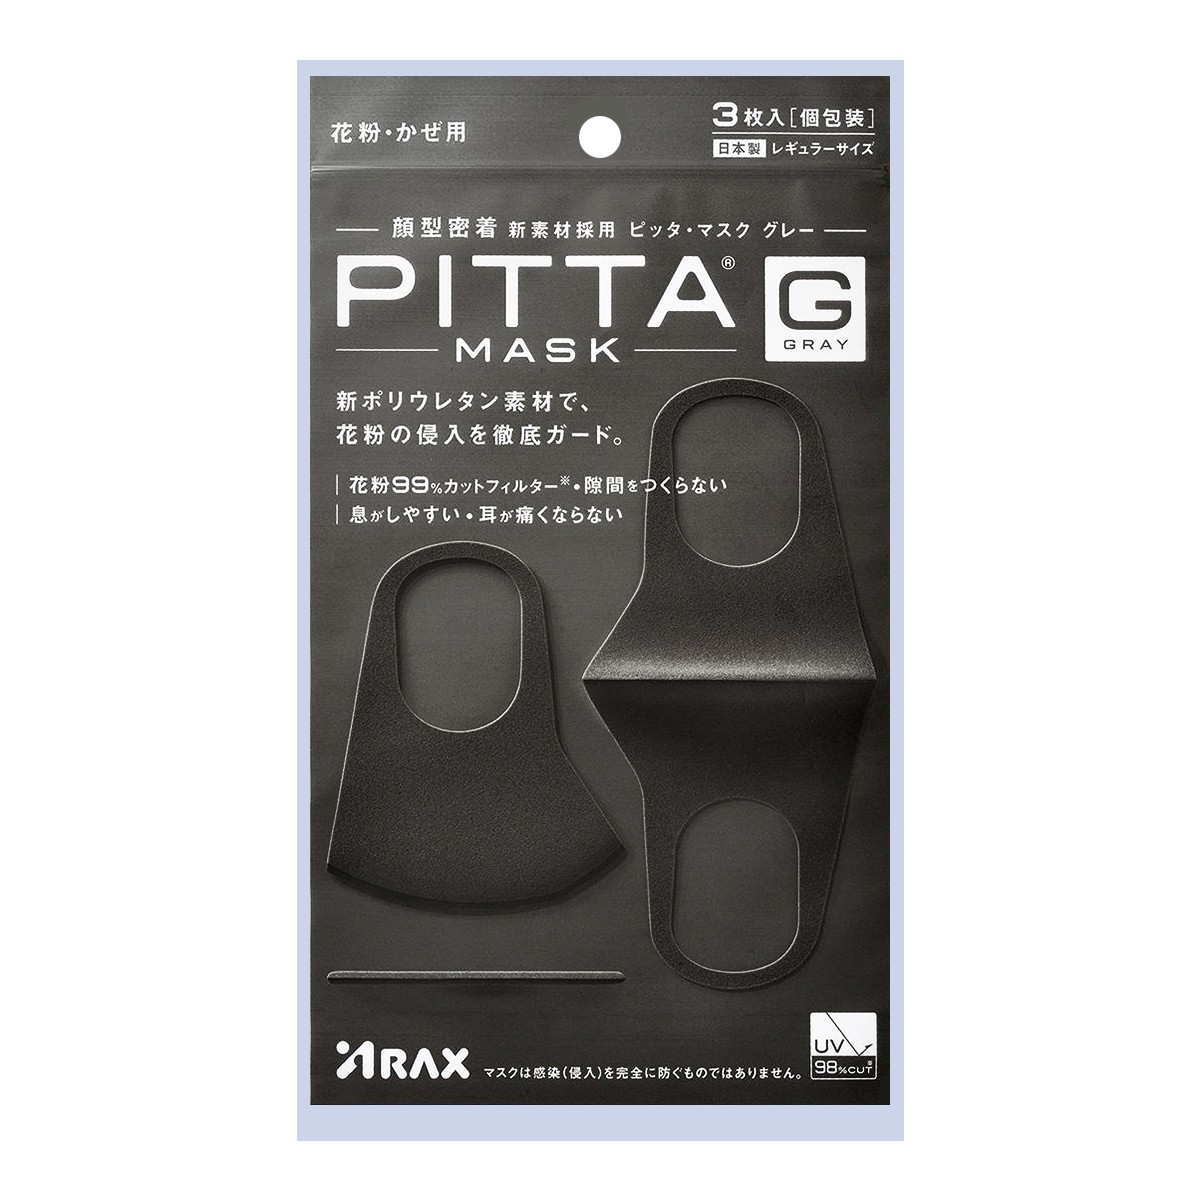 PITTA MASK Washable Anti-Allergen Dust Repellent Face Mask Dark Gray 3pcs